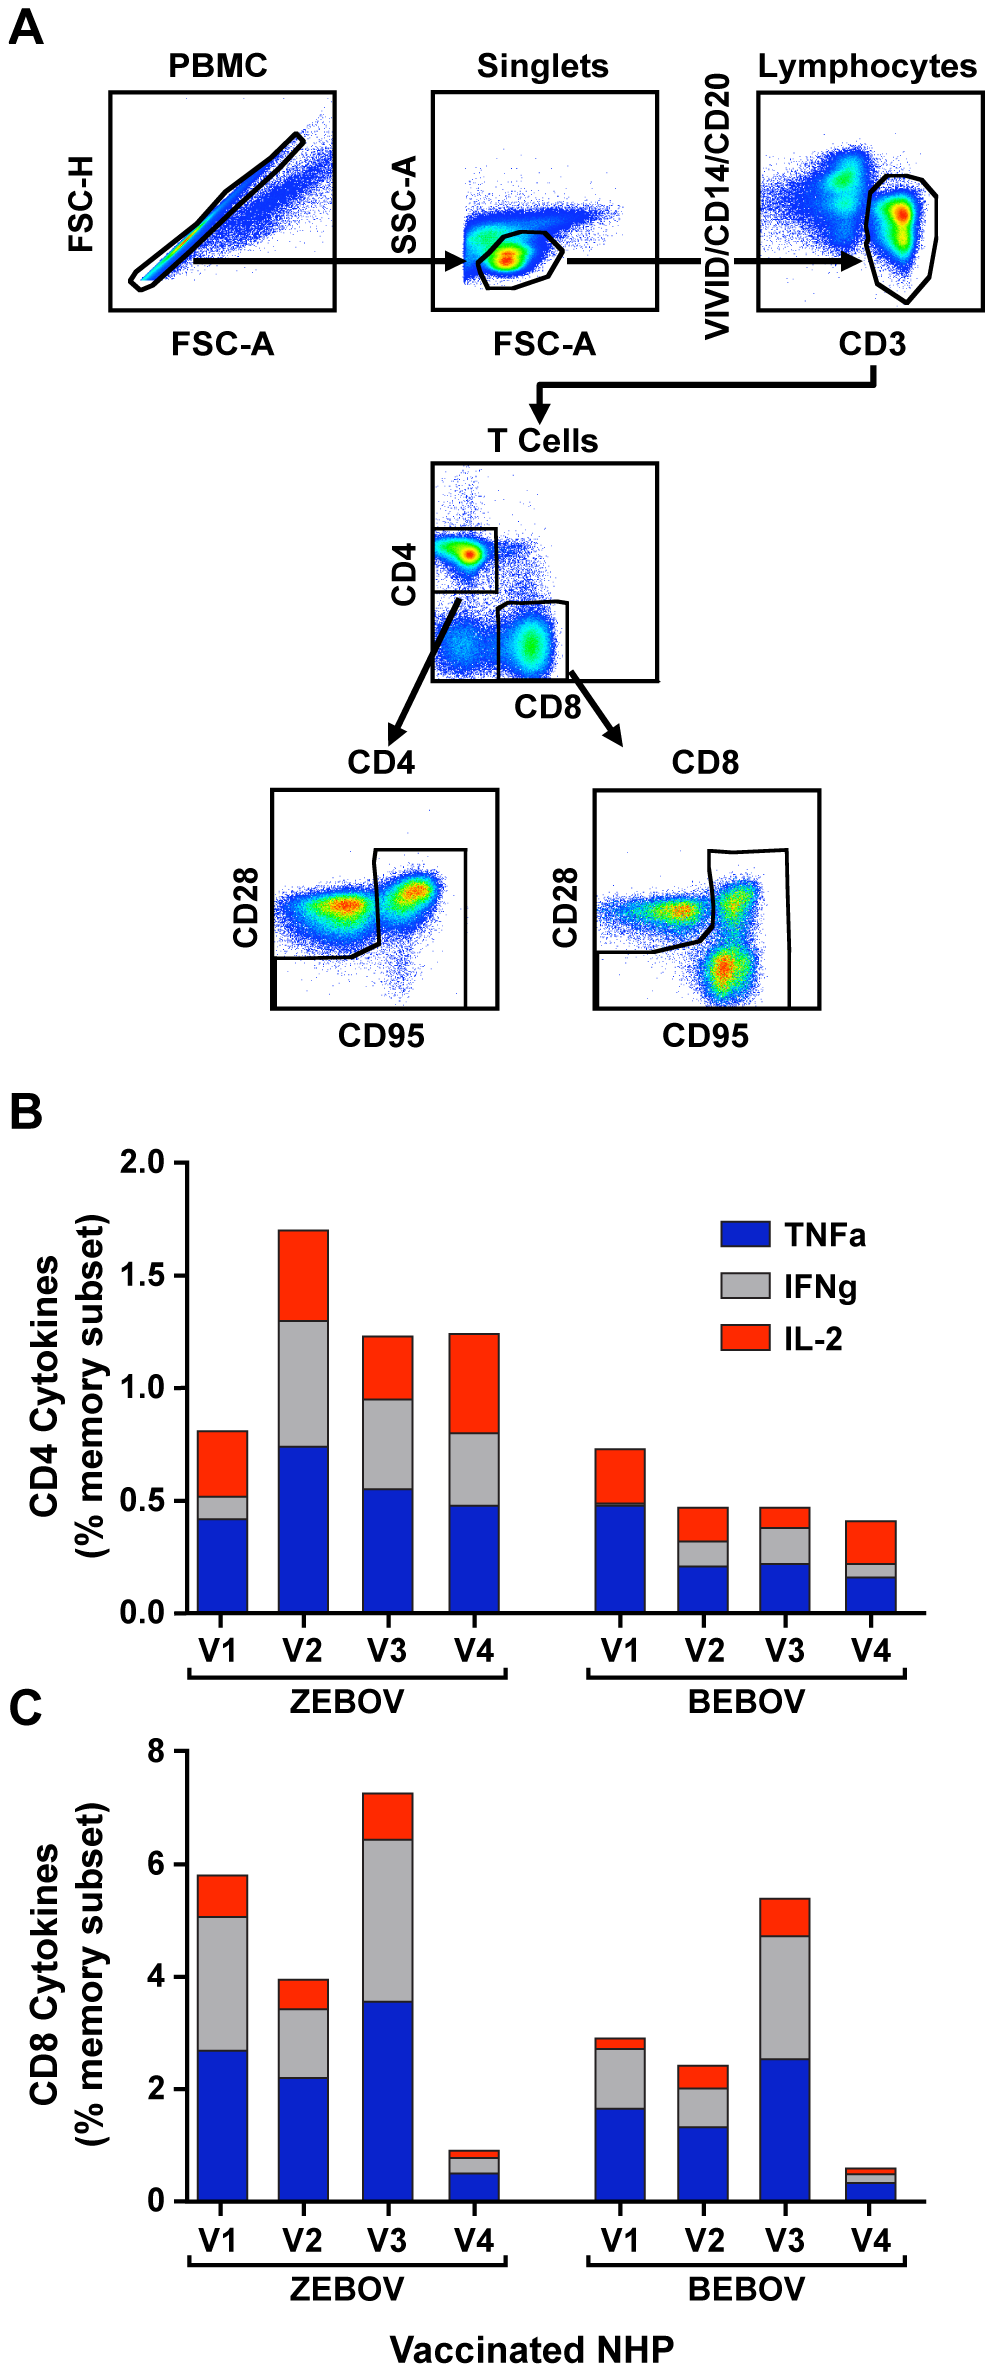 T-cell immune responses measured by intracellular cytokine staining.